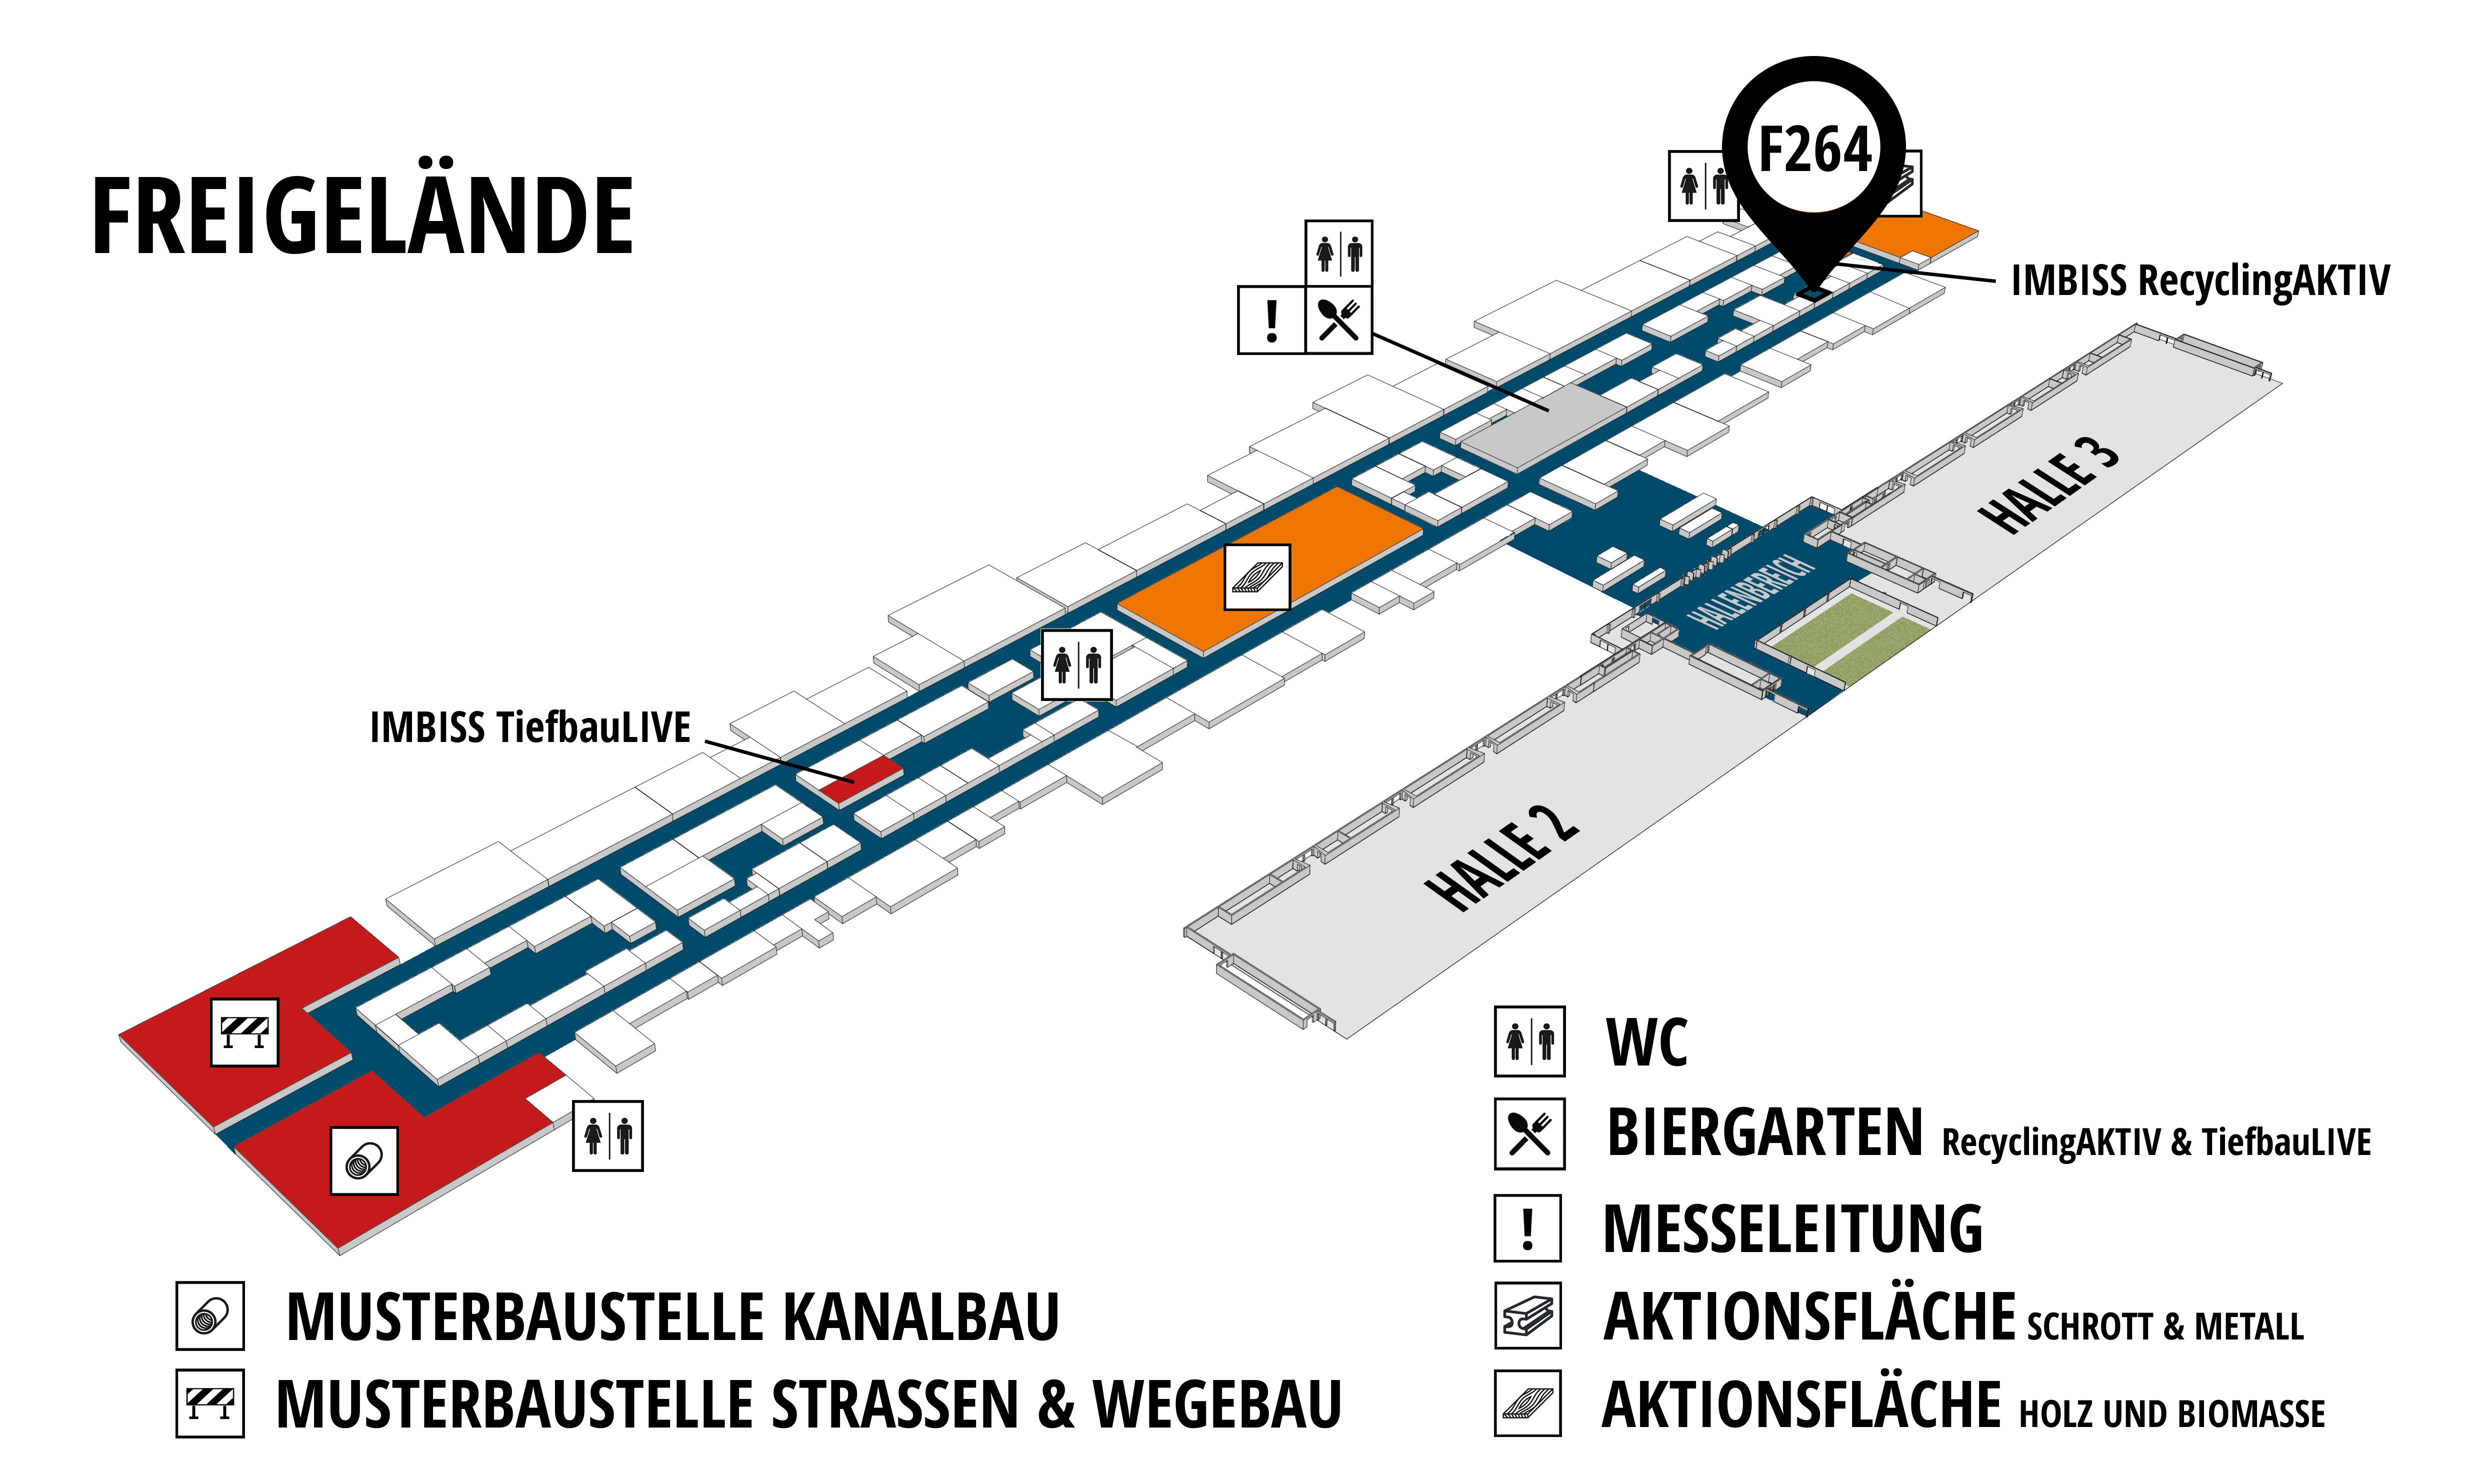 RecyclingAKTIV & TiefbauLIVE 2019. The Demonstration Trade Fairs ||Demonstration trade fair for waste removal and recycling. Demonstration trade fair for road construction and civil engineering. hall map (Outdoor area (east)): stand F264